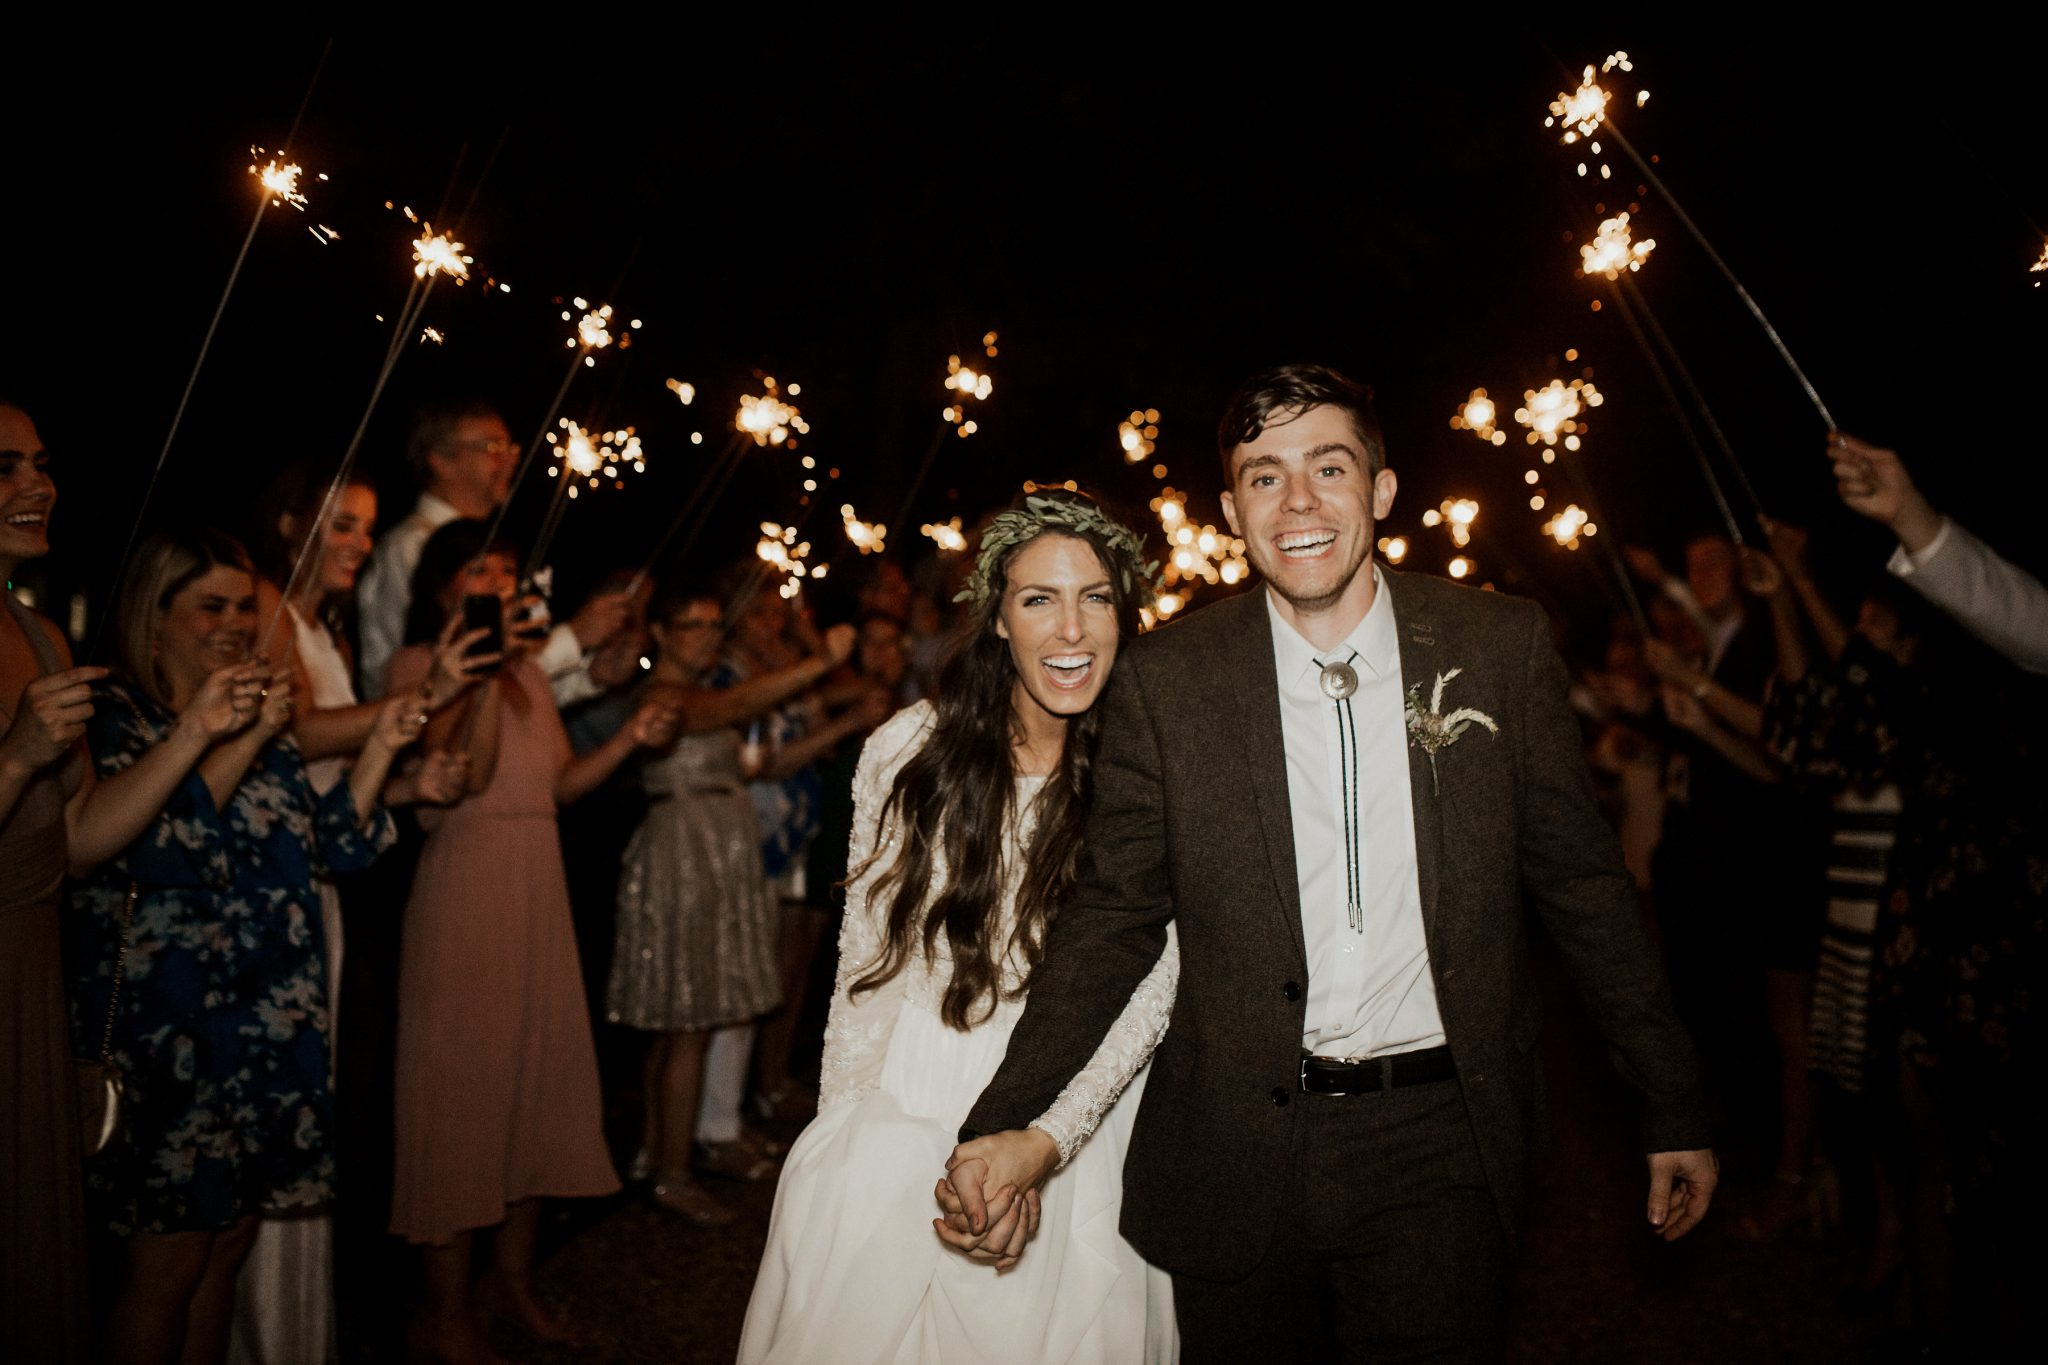 This rustic romance wedding reception ended with the guests all holding up sparklers for the newly married couple